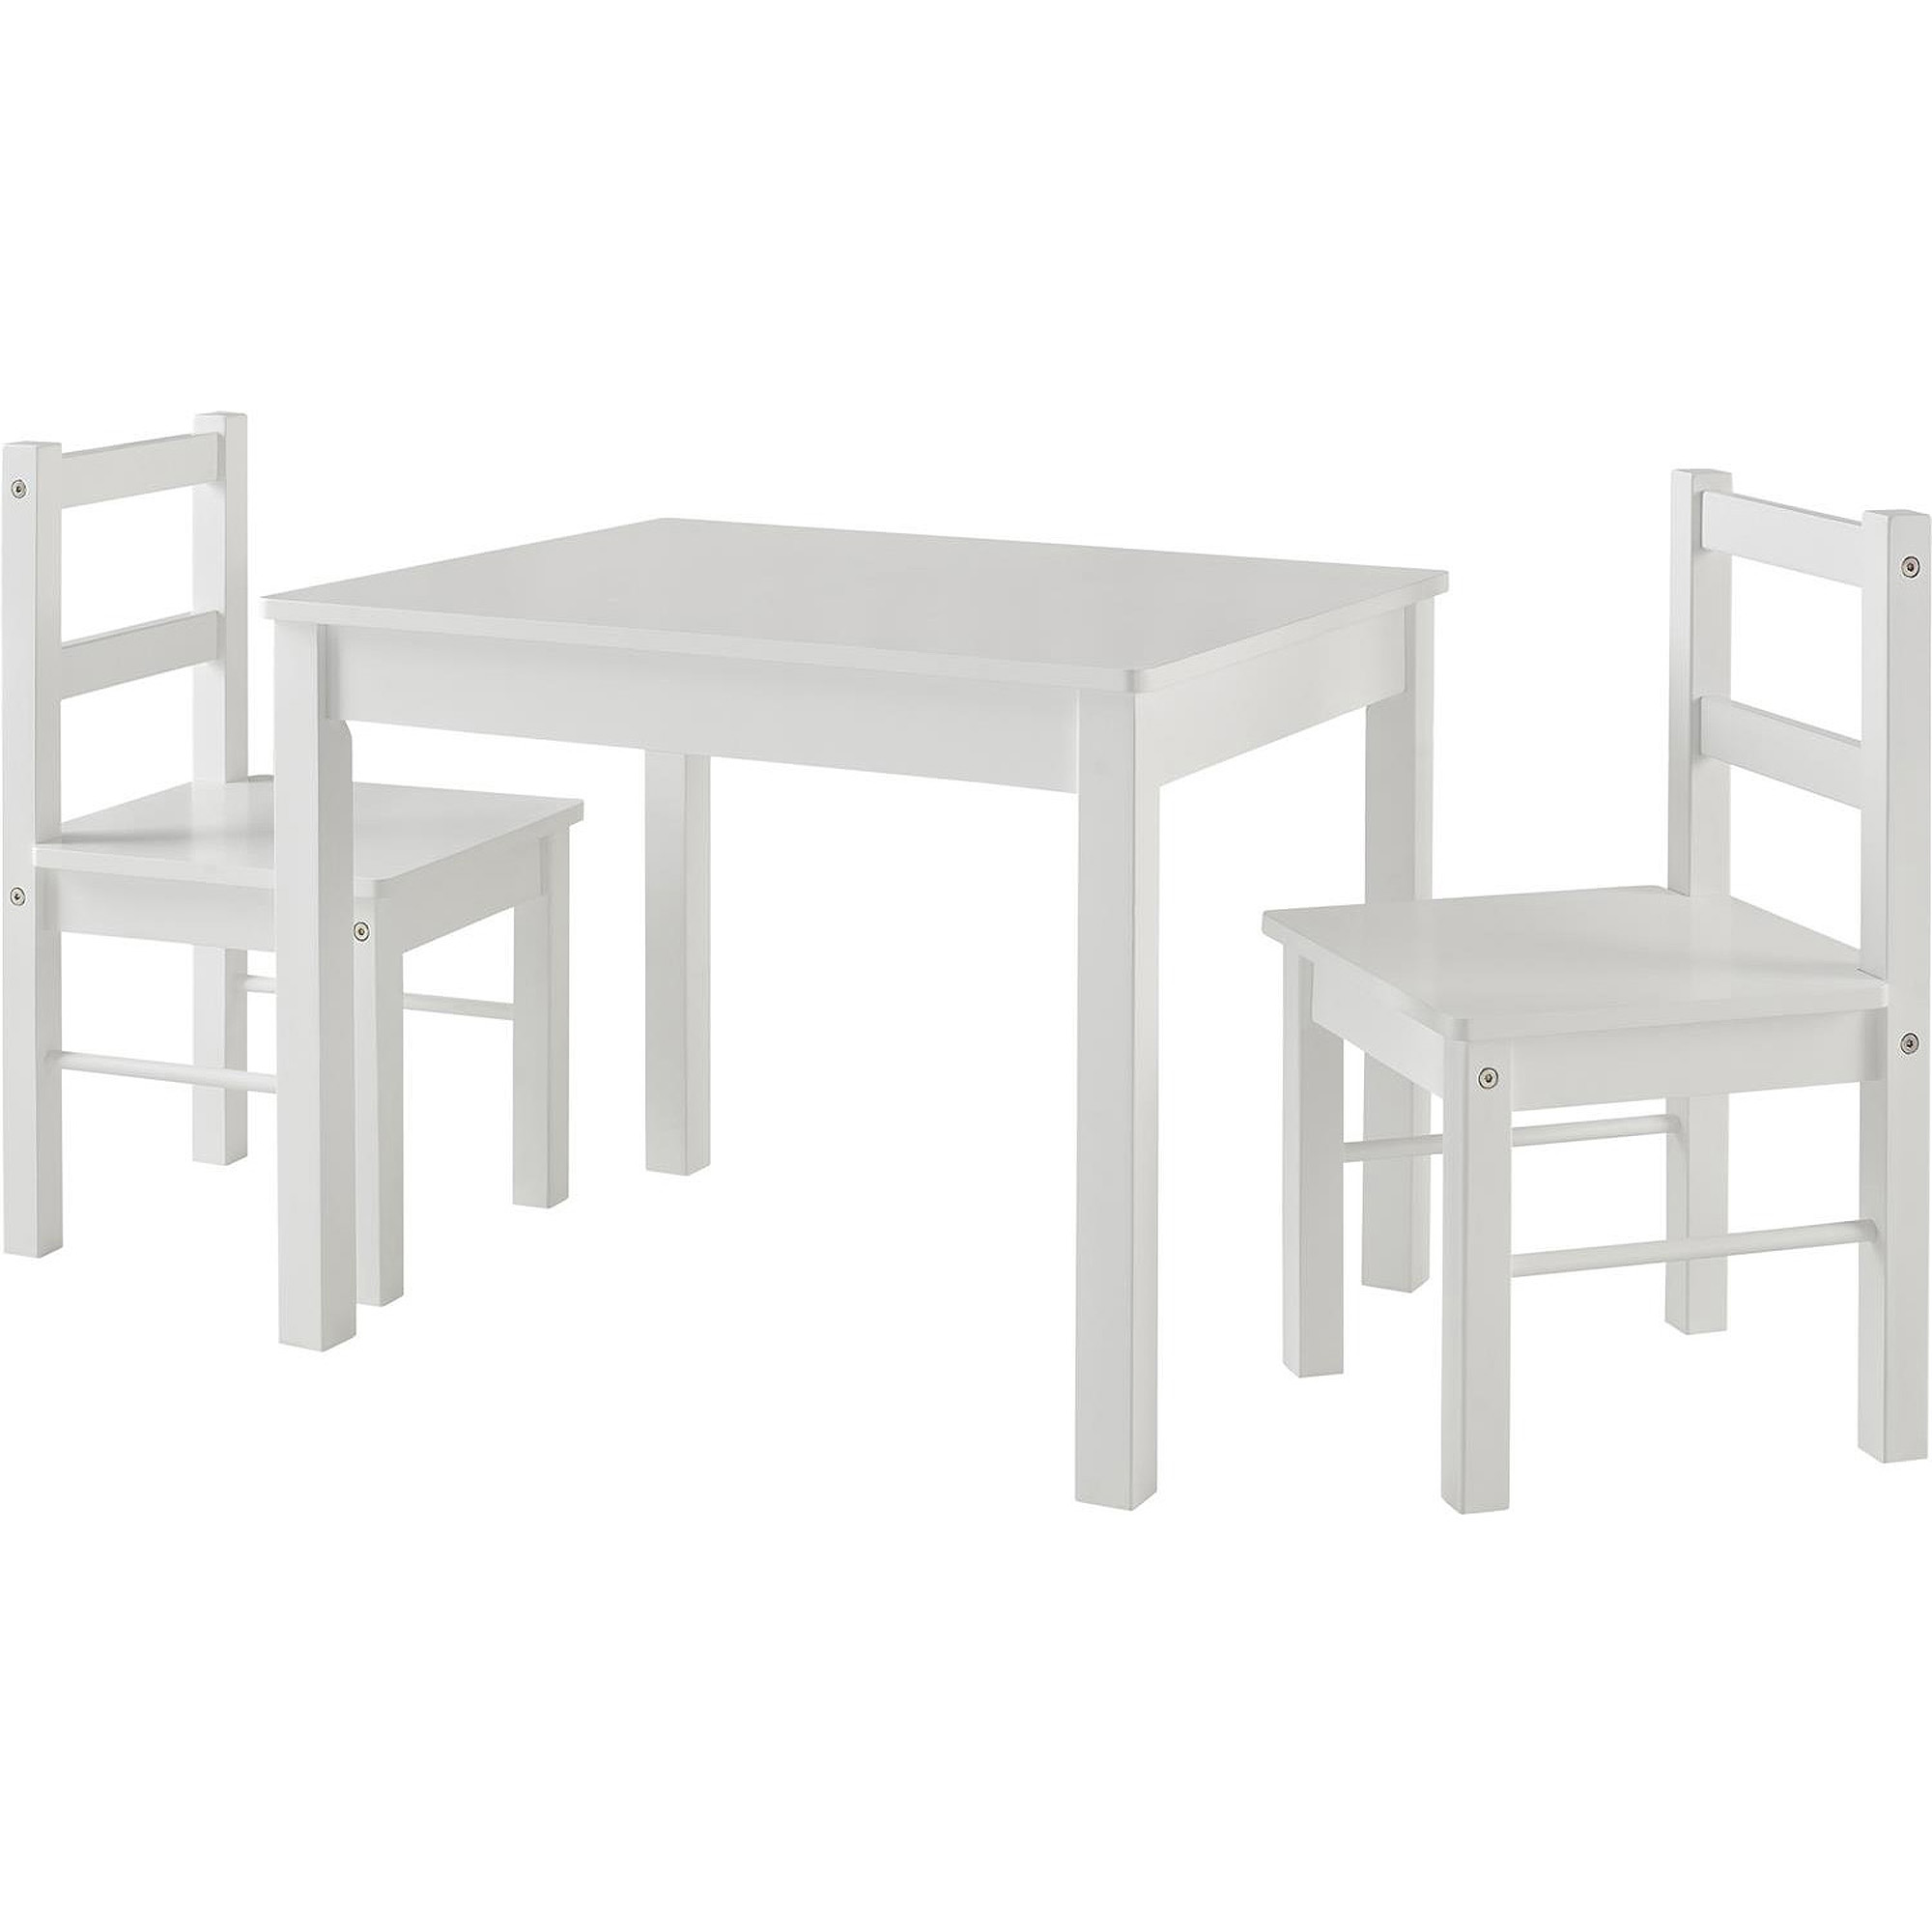 toys r us table and chairs for toddlers wishbone chair replica childs white - home ideas